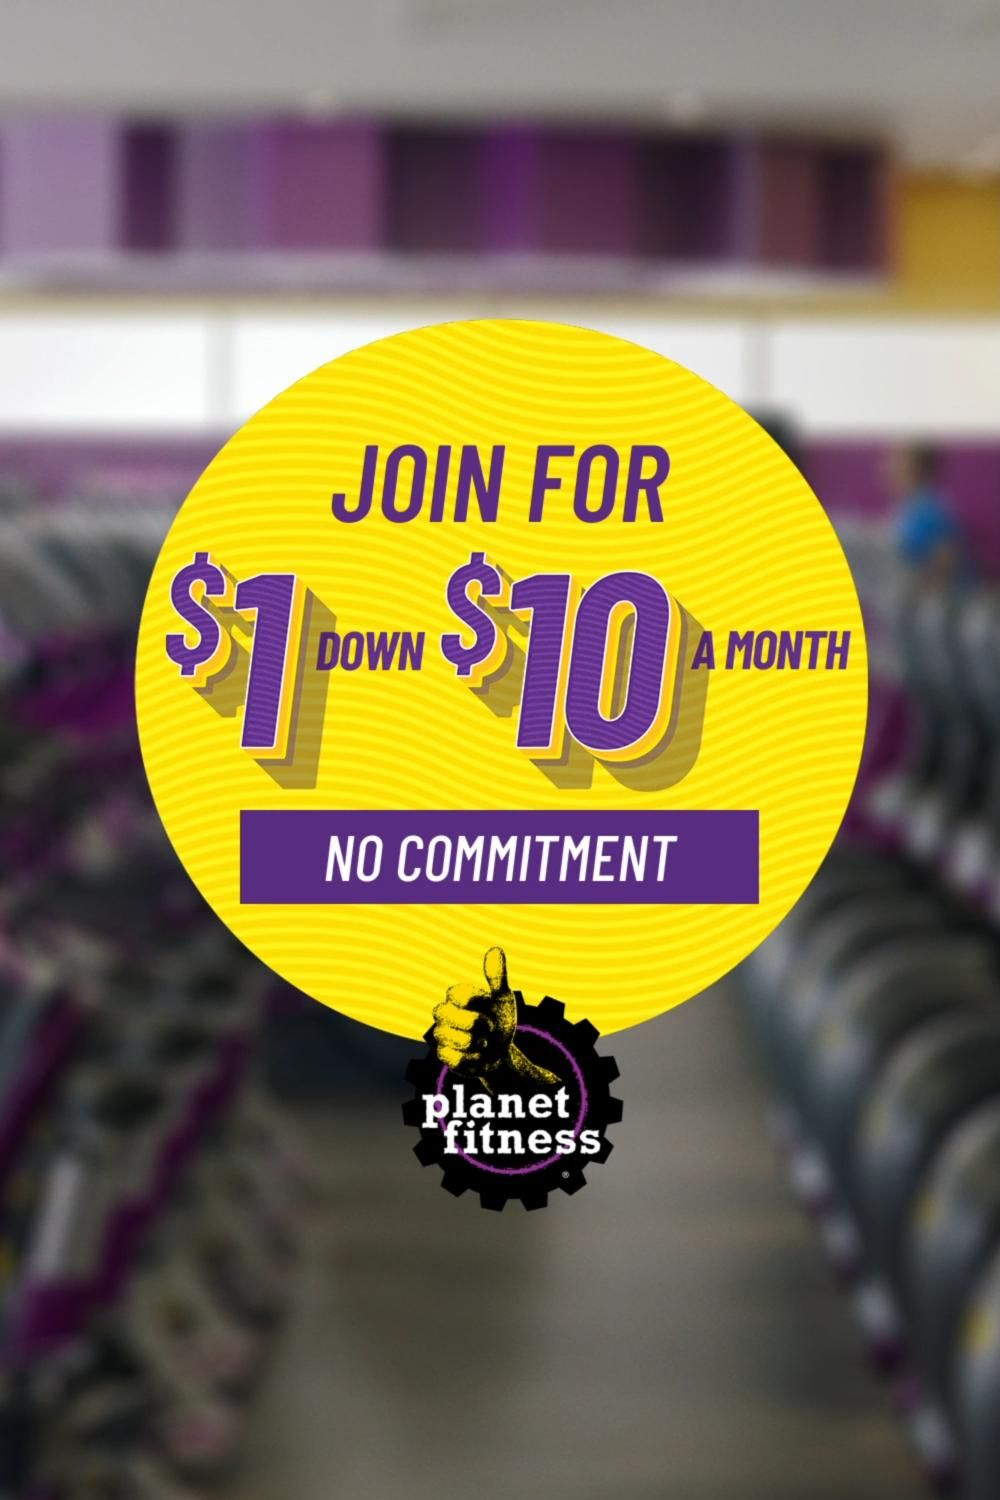 Feel Great About Your Workout At Planet Fitness With Our Spacious Squeaky Clean Clubs Video Planet Fitness Workout Gyms Near Me Planet Fitness Gym